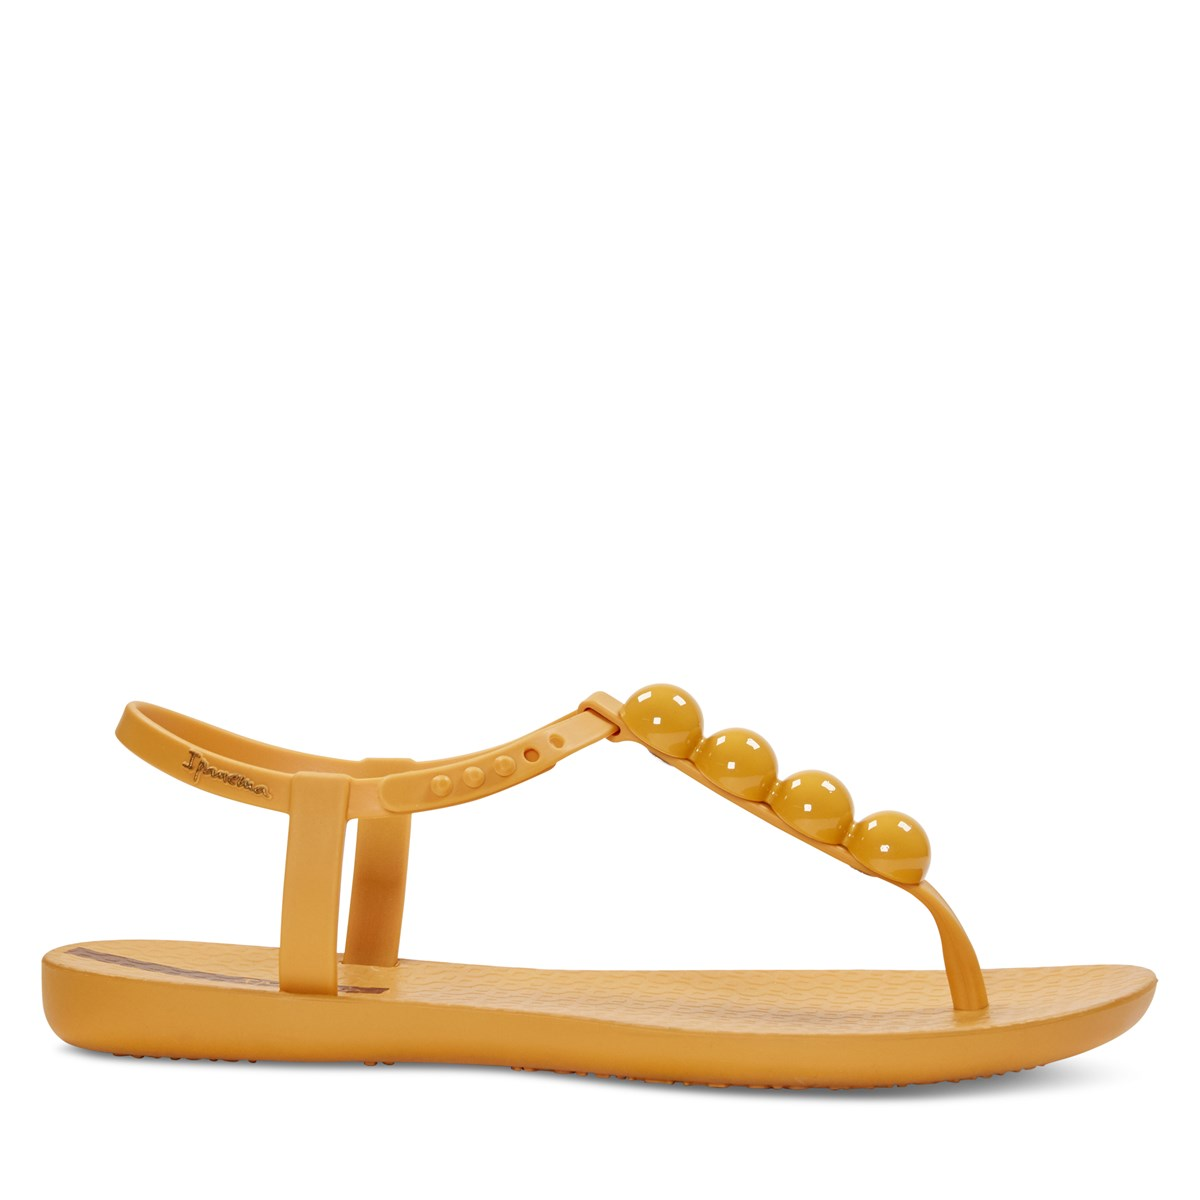 Women's Pearl Sandal in Yellow